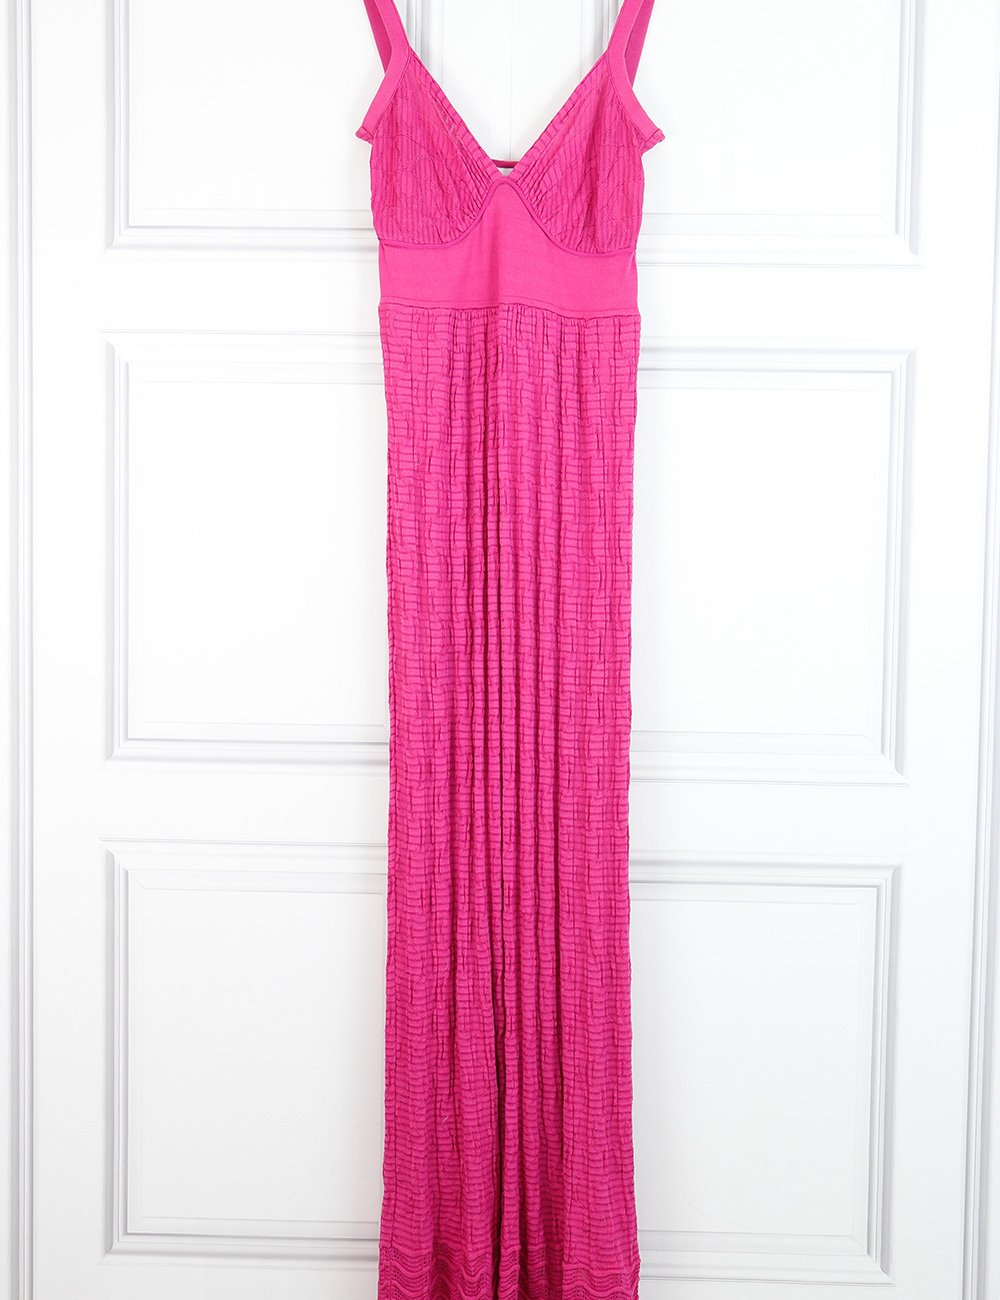 M by Missoni pink maxi sleeveless dress 8UK- My Wardrobe Mistakes